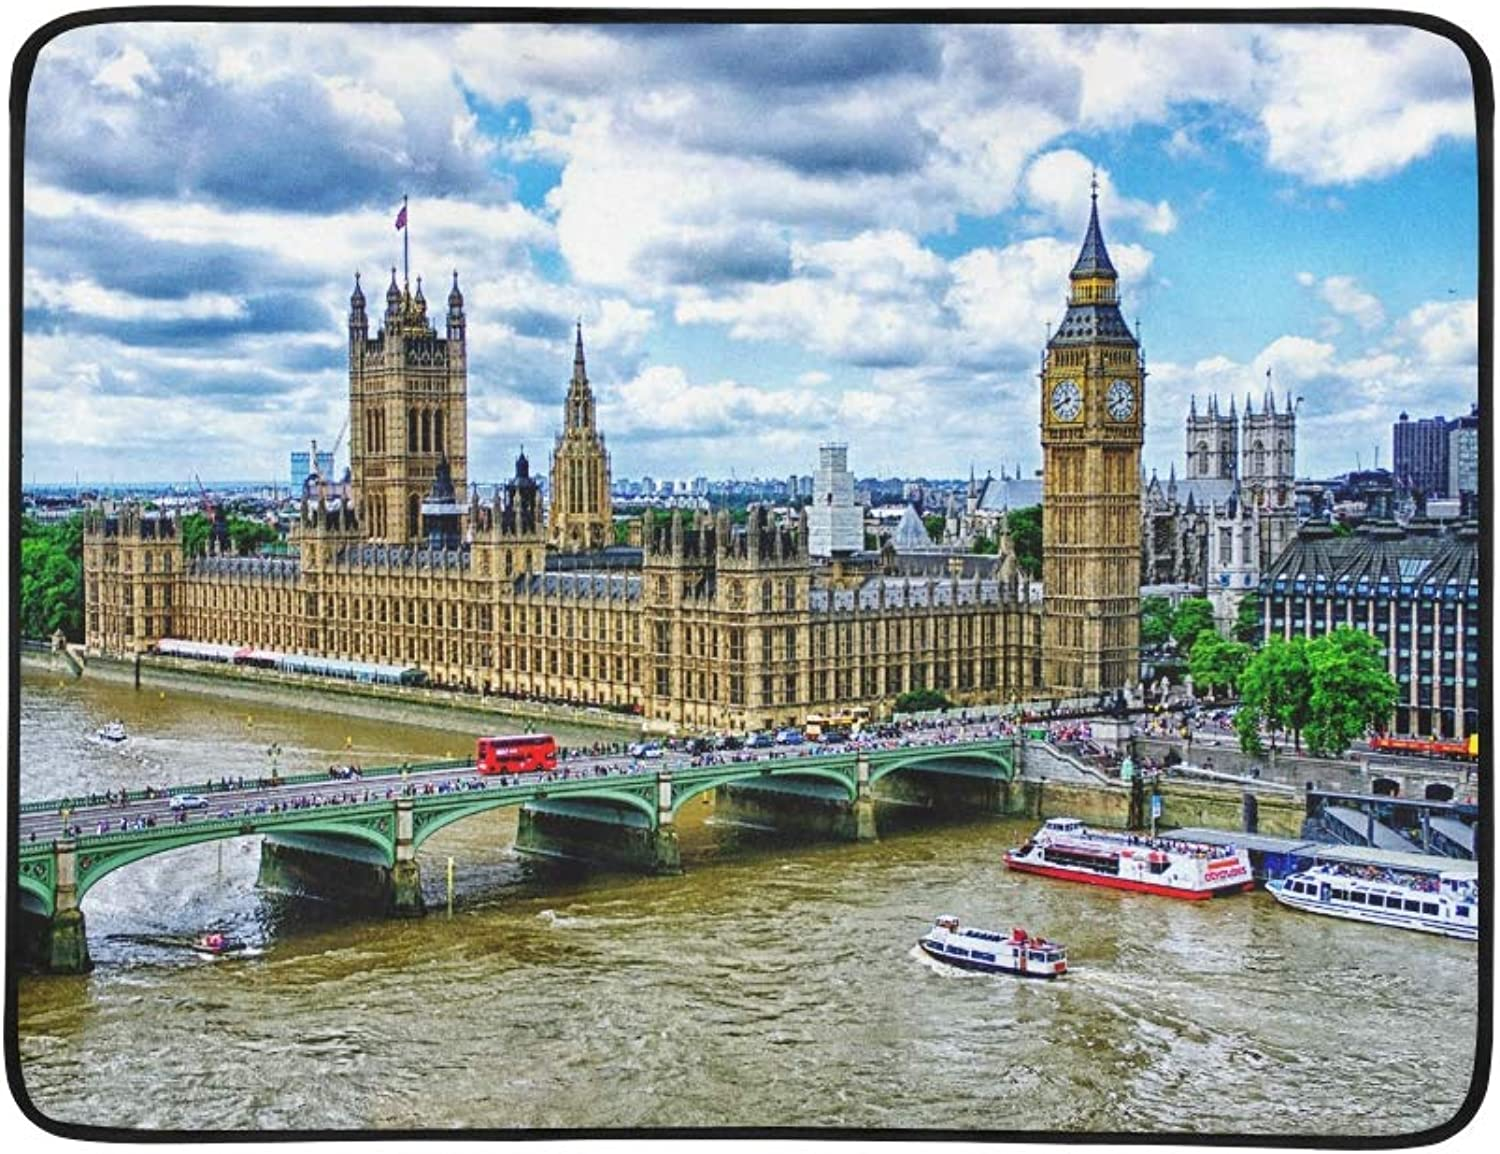 Big Ben London Palace of Westminster Bridge River Pattern Portable and Foldable Blanket Mat 60x78 Inch Handy Mat for Camping Picnic Beach Indoor Outdoor Travel